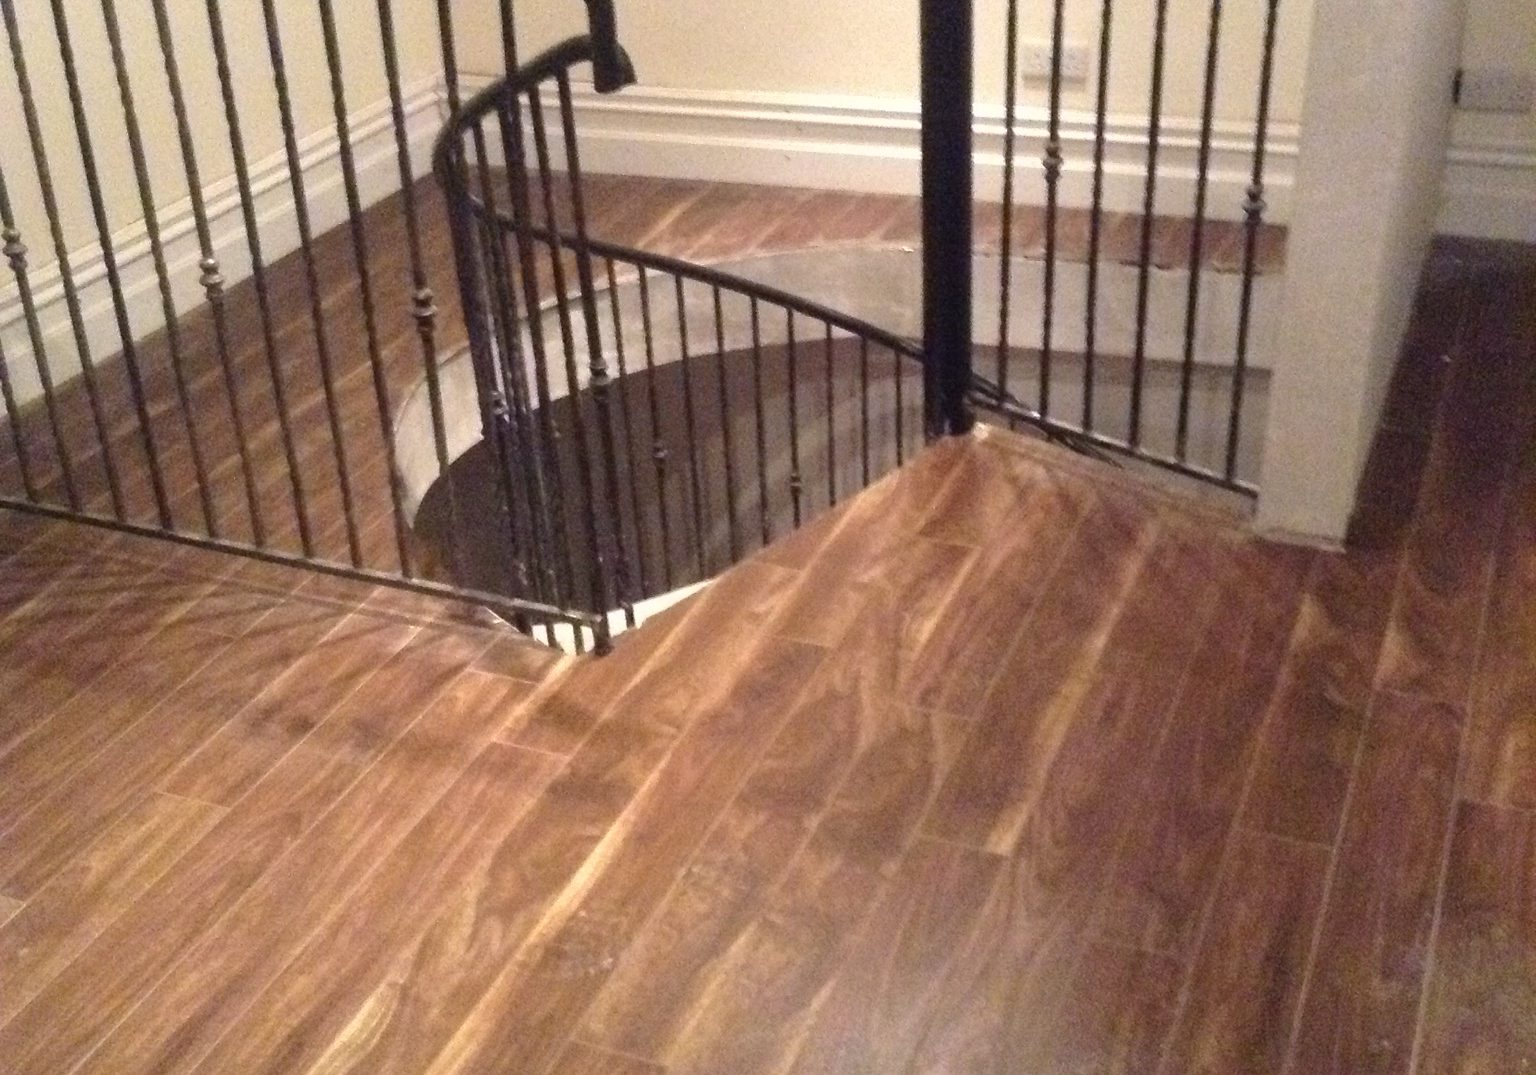 Finished Spiral Staircase with wrought iron handrails and hardwood flooring, in converted Loft